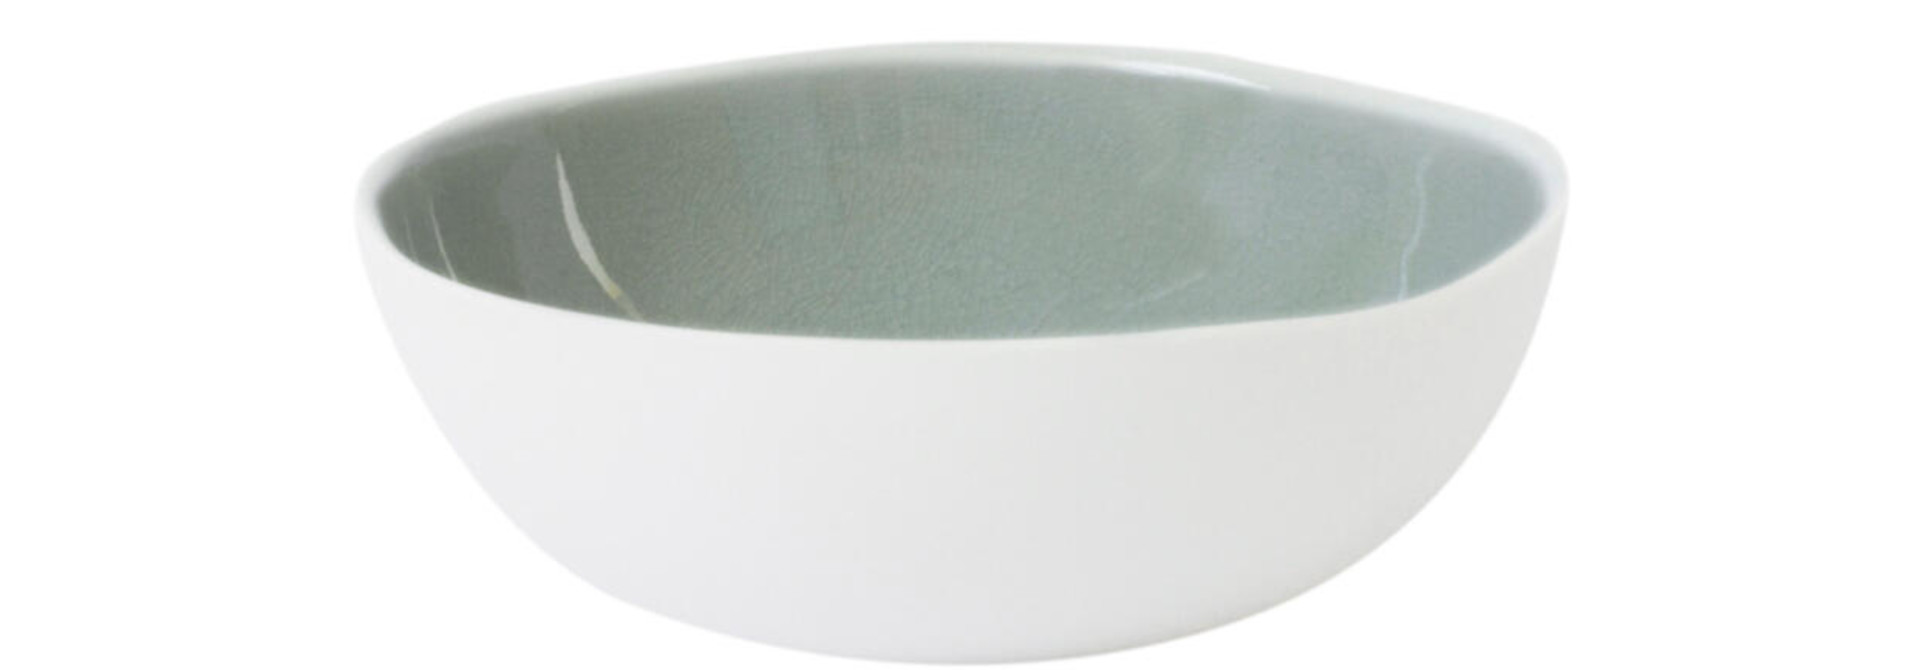 Cereal Bowl - Maguelone - Gris